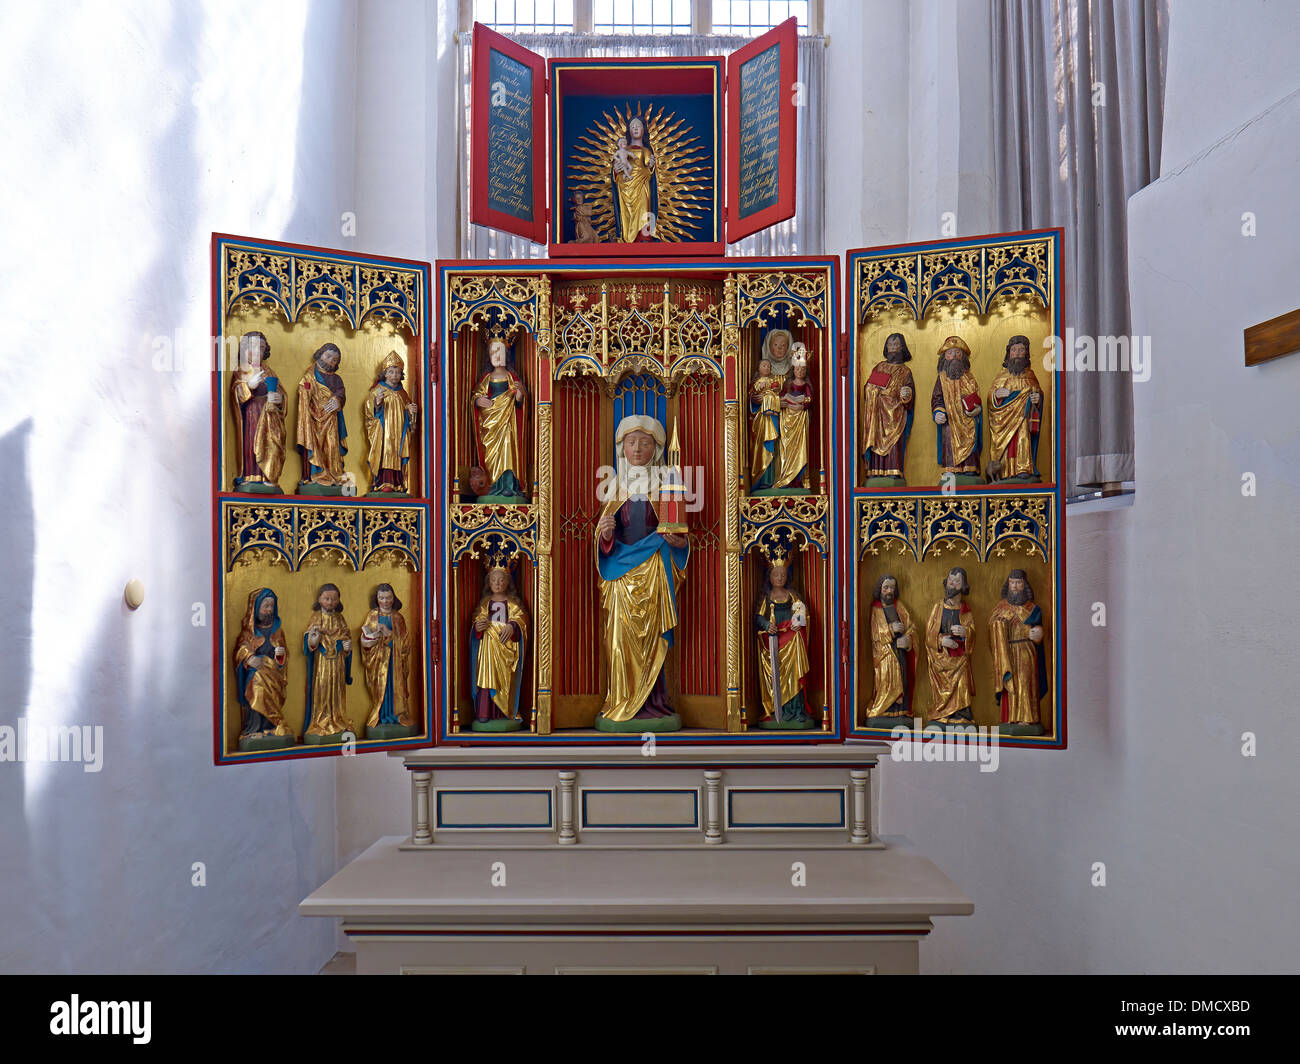 Gertrude altar in the church of St. Cosmae and Damiani, Hanseatic city of Stade, Lower Saxony, Germany - Stock Image